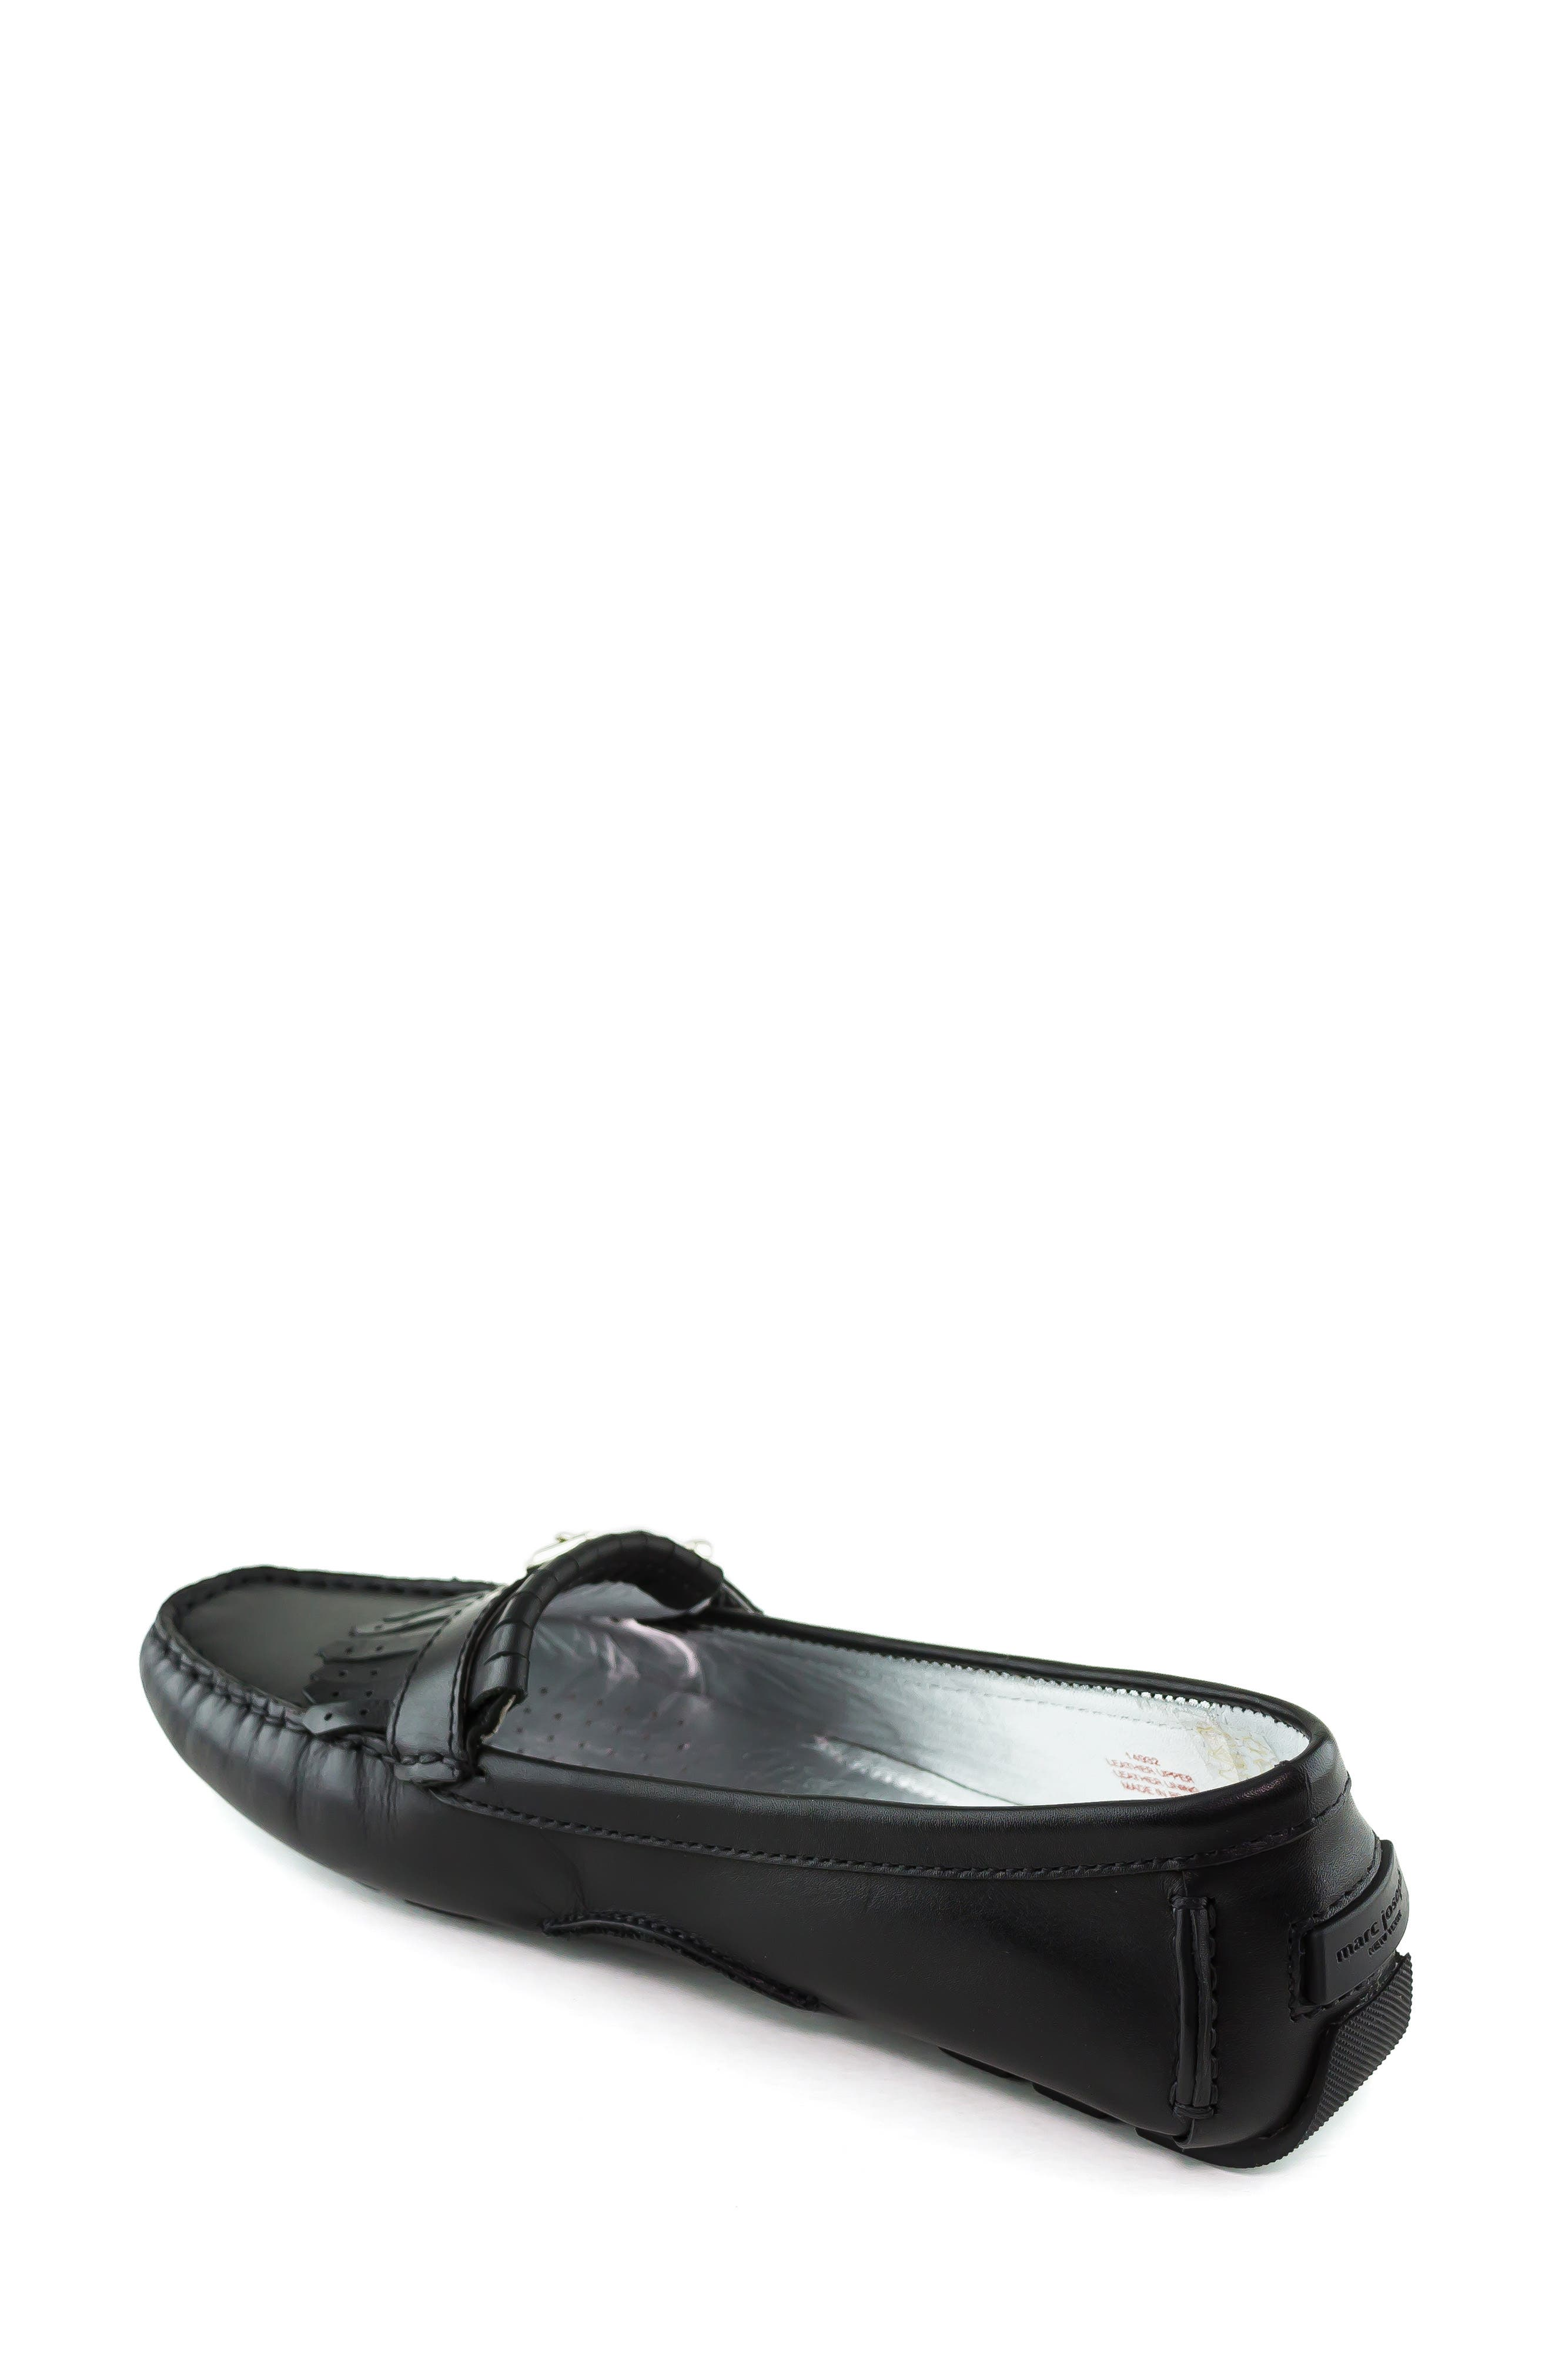 MARC JOSEPH NEW YORK, South Street Loafer, Alternate thumbnail 2, color, BLACK LEATHER